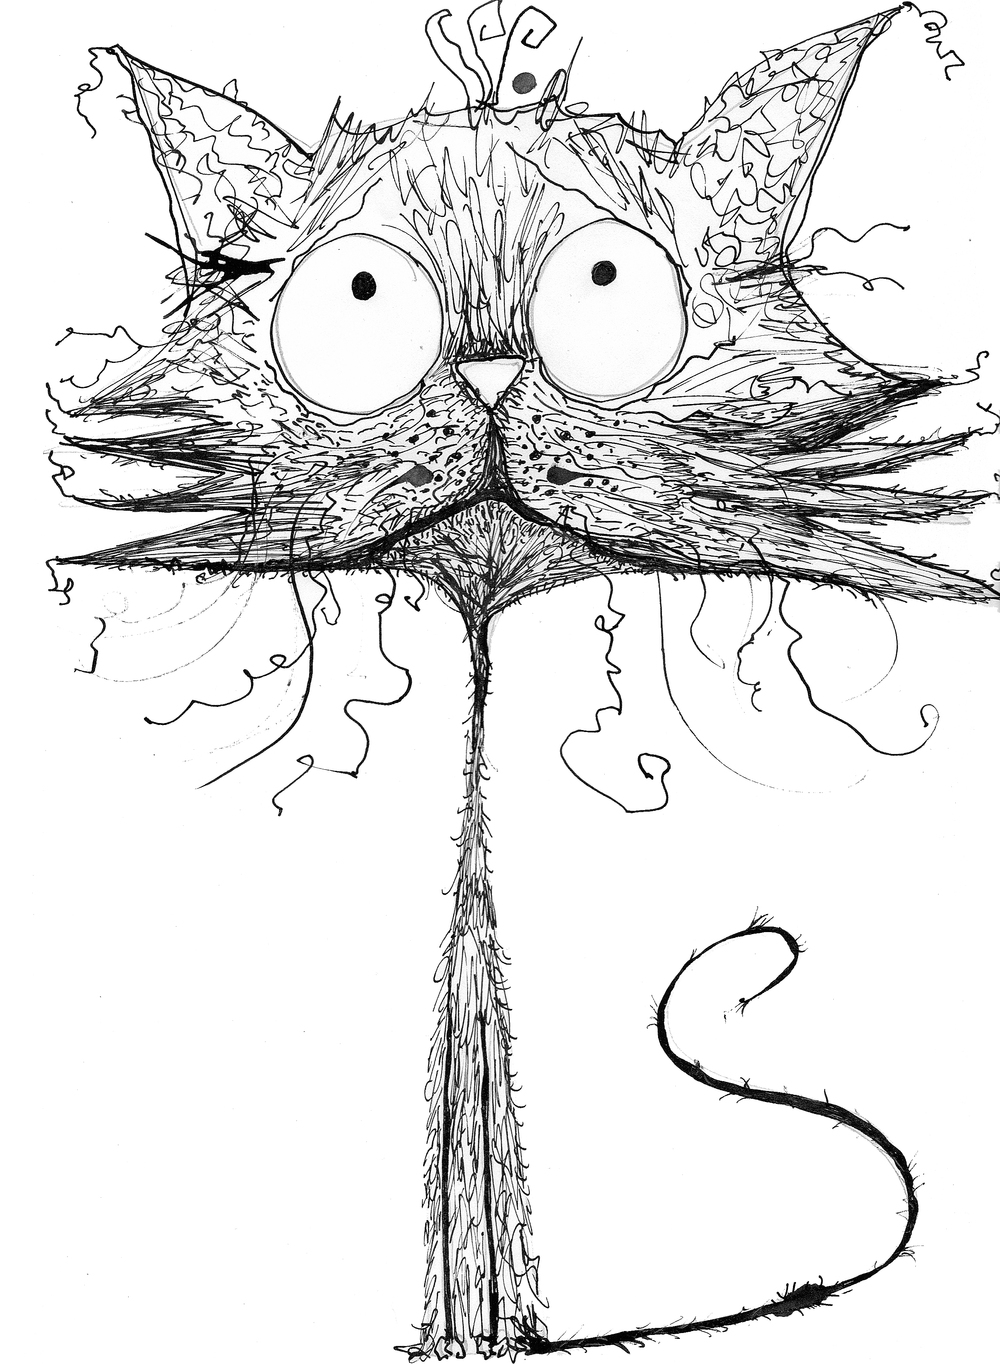 Tall Cat_Natalie Sutton illustration